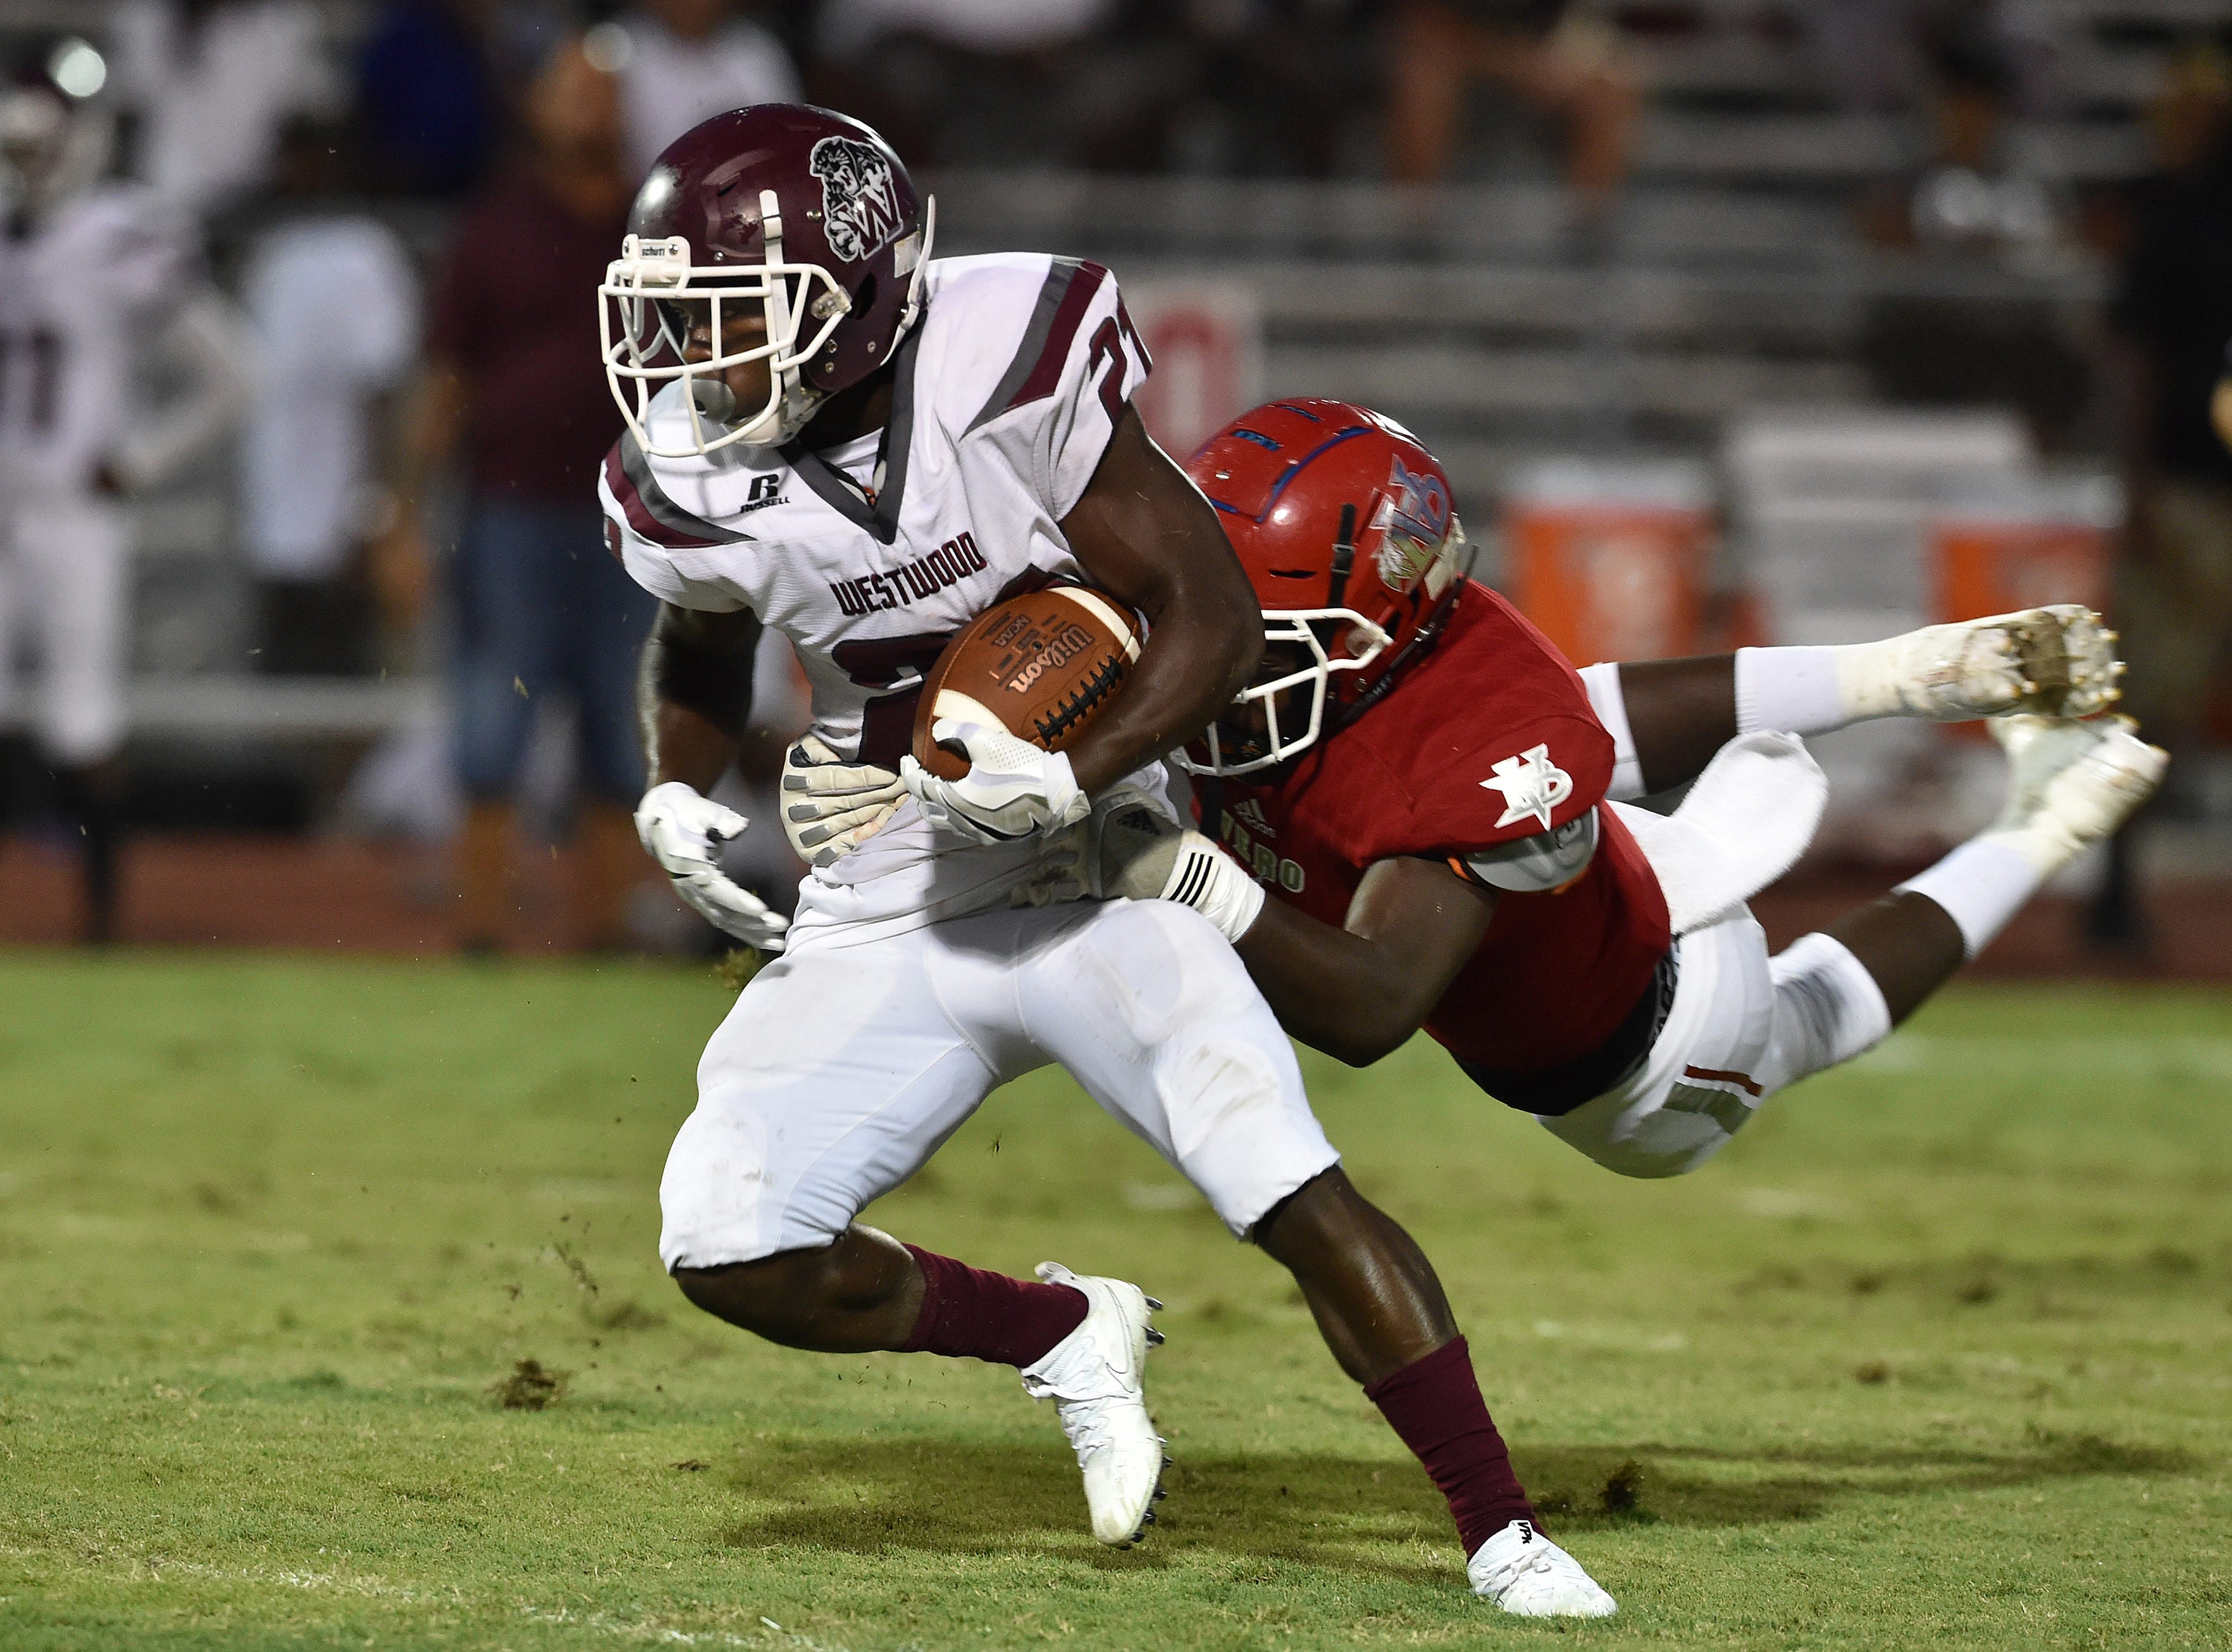 Fort Pierce Westwood's Jenard Jones is slowed by the grip from Corey Henry, of Vero Beach, before being tacked for a loss on the first quarter play on Friday, Oct. 5, 2018, at the Citrus Bowl in Vero Beach.